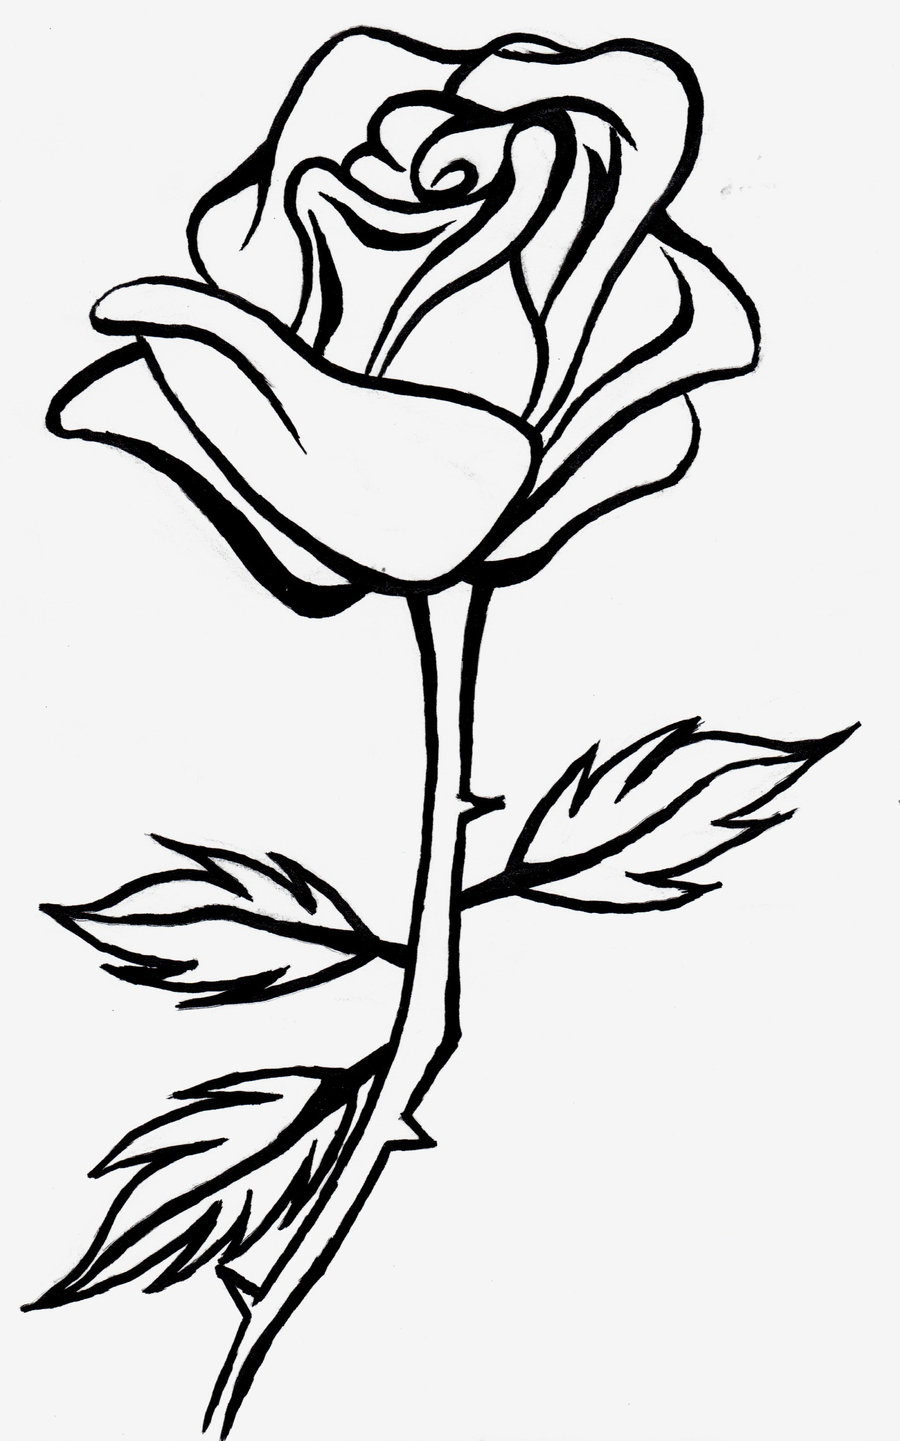 Roses clipart black and white. Rose drawing at getdrawings